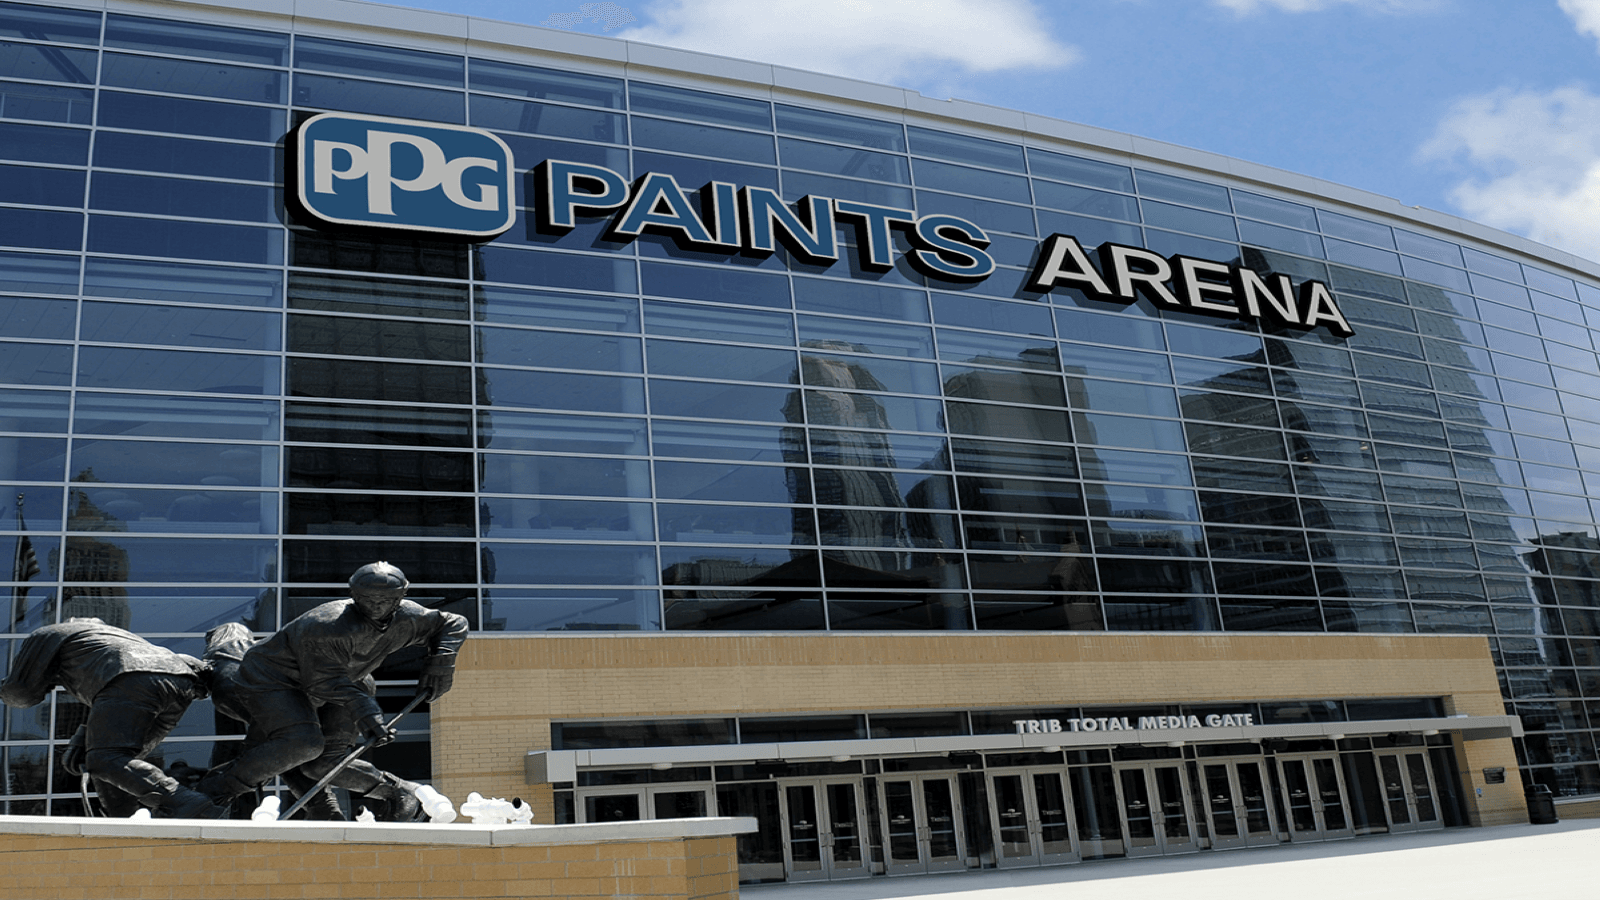 Hotel near PPG Paints Arena